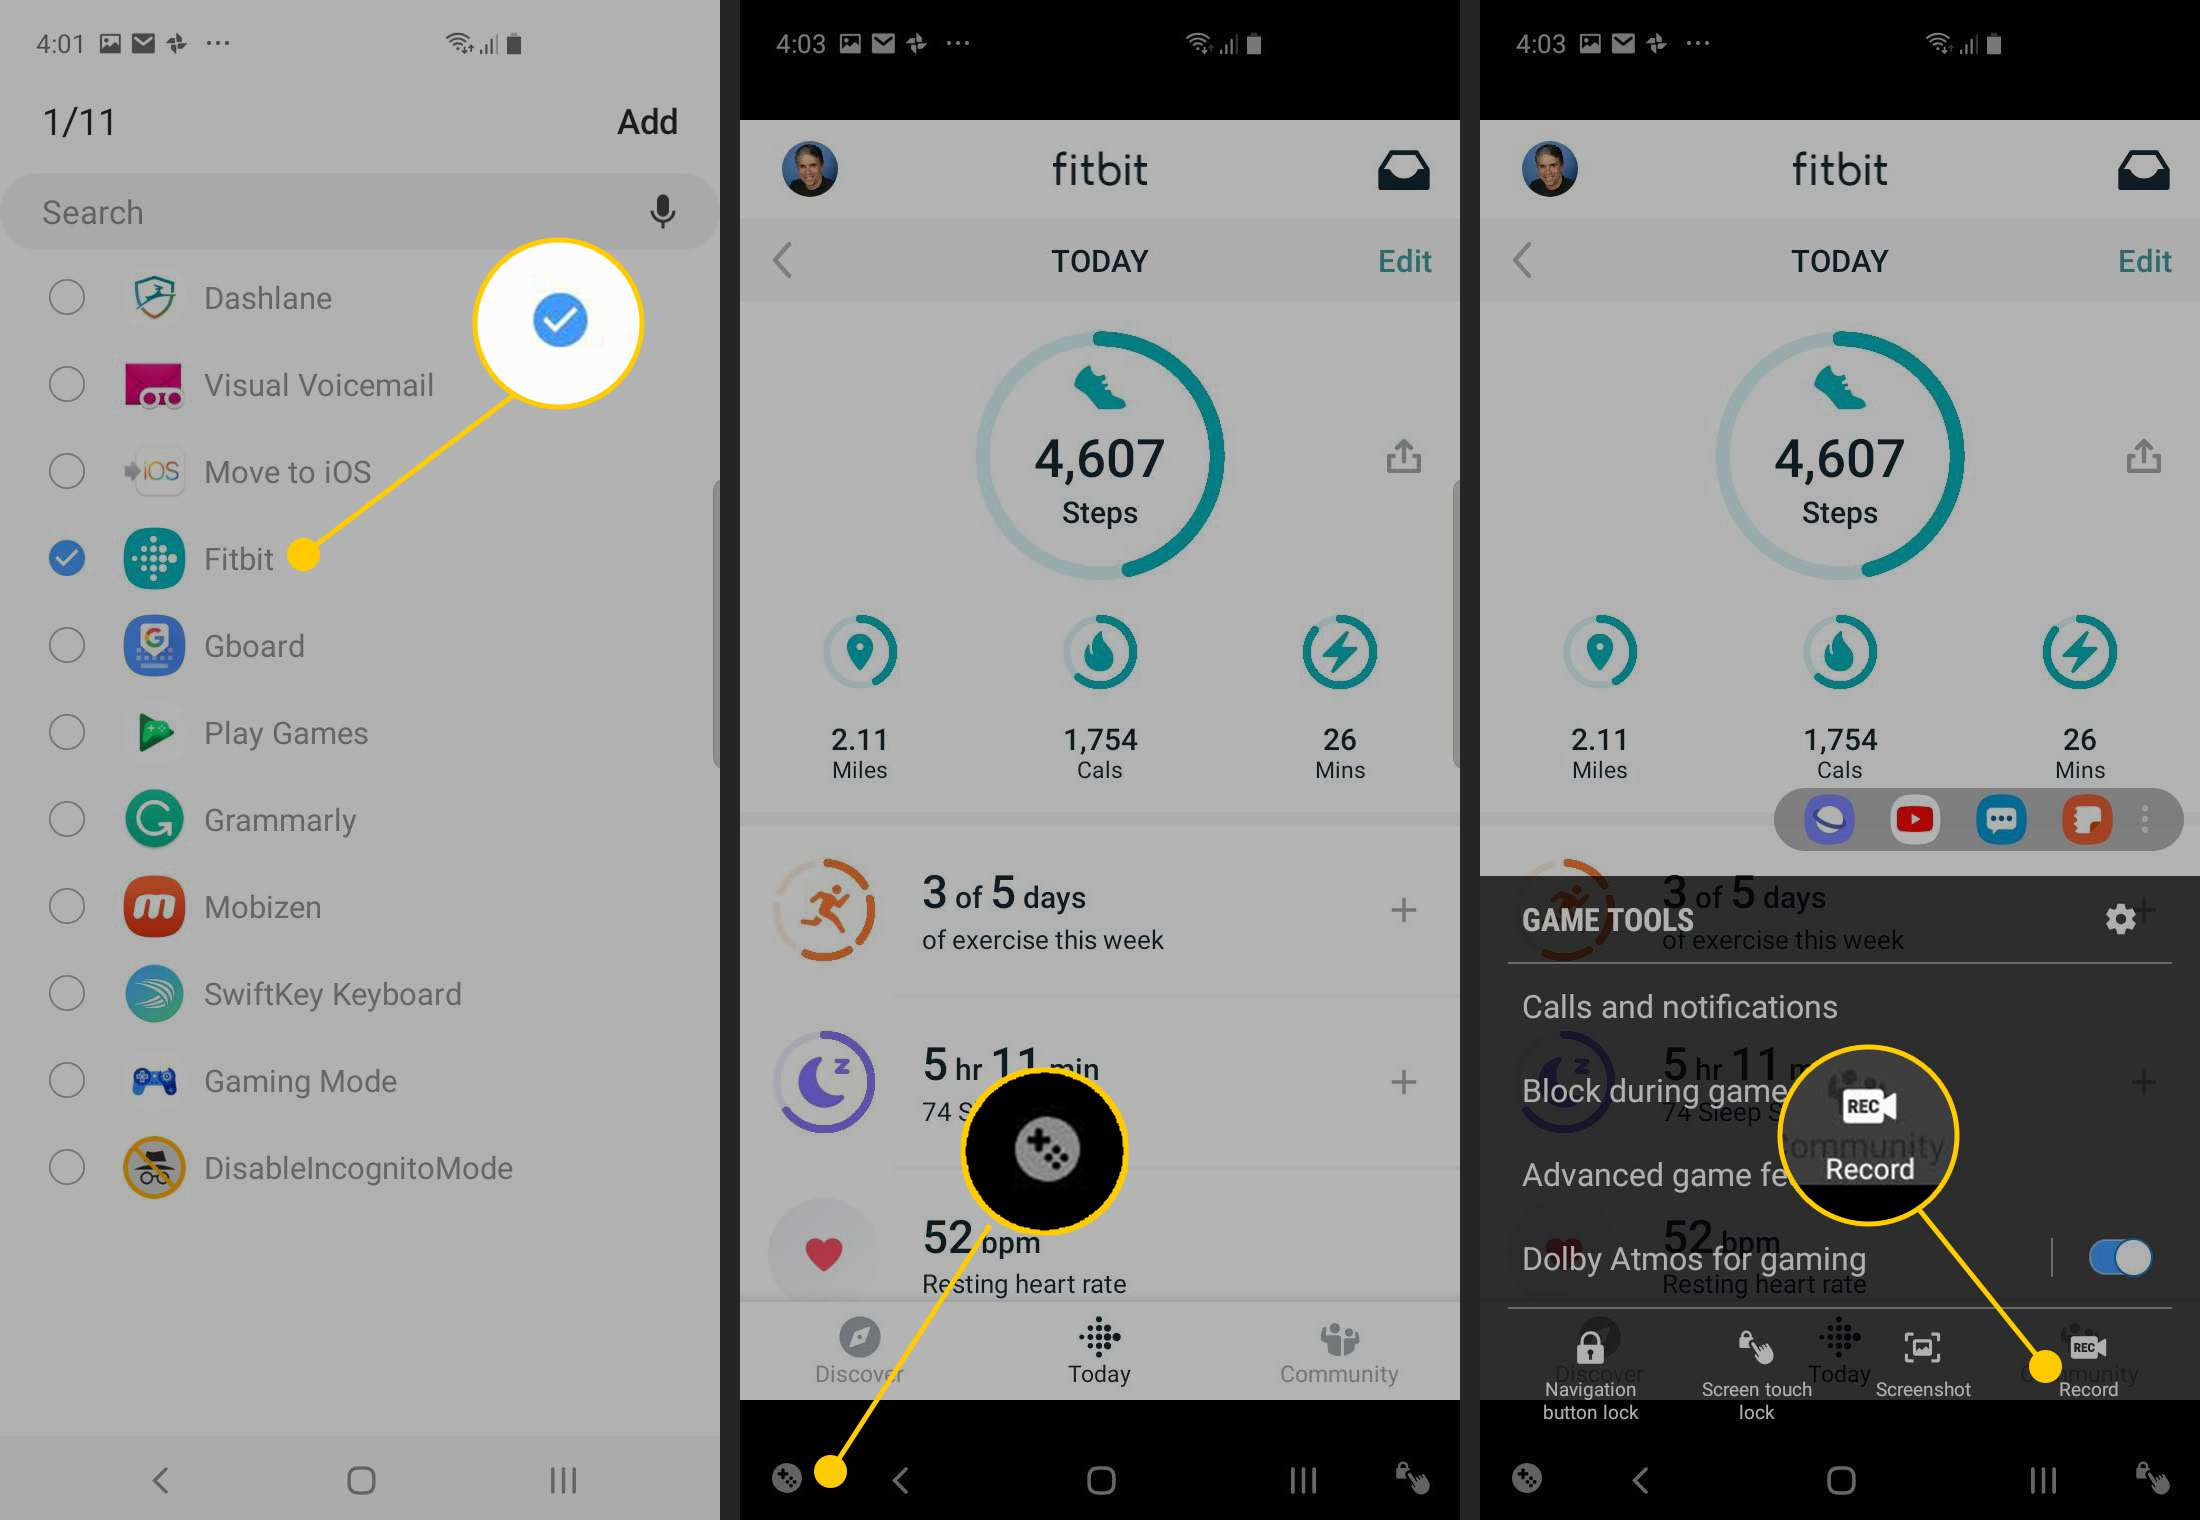 Fitbit checkmark, Game Tools icon, Record icon on Android